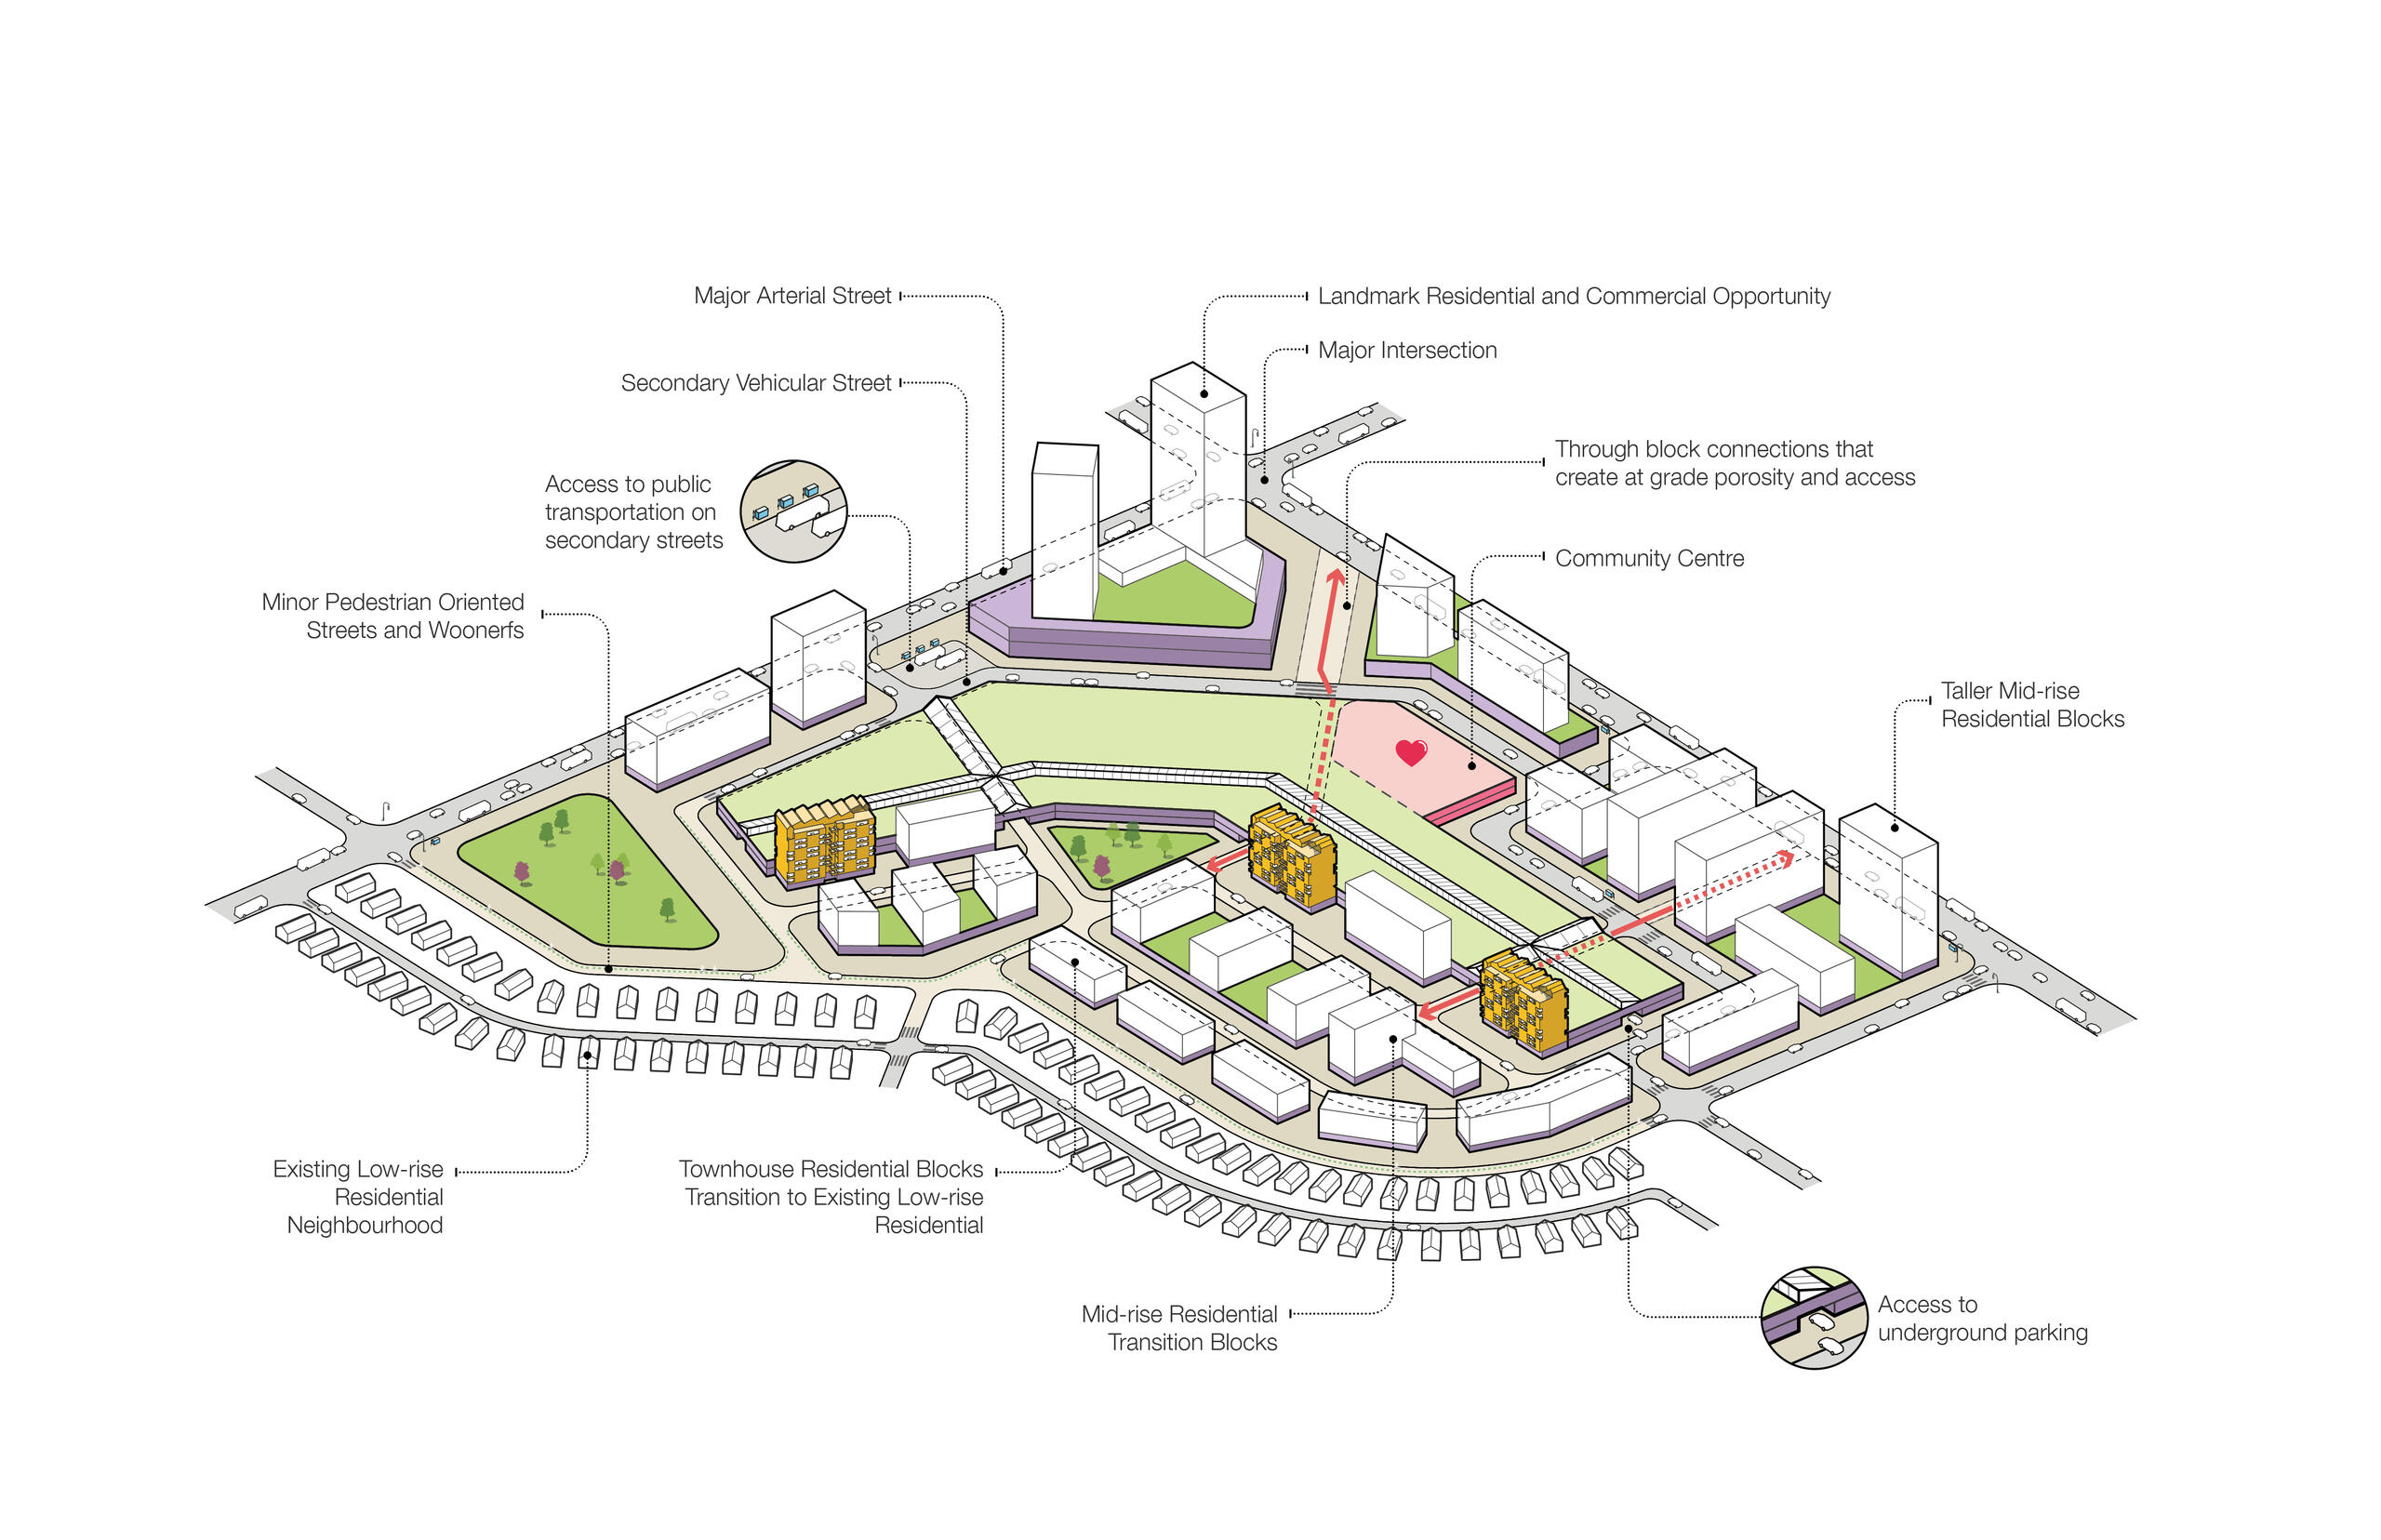 axo diagram of a mall site with pull out text indicating newly added retirement buildings, highrise buildings, new transit connections, new underground parking and new pedestrian-oriented street connections